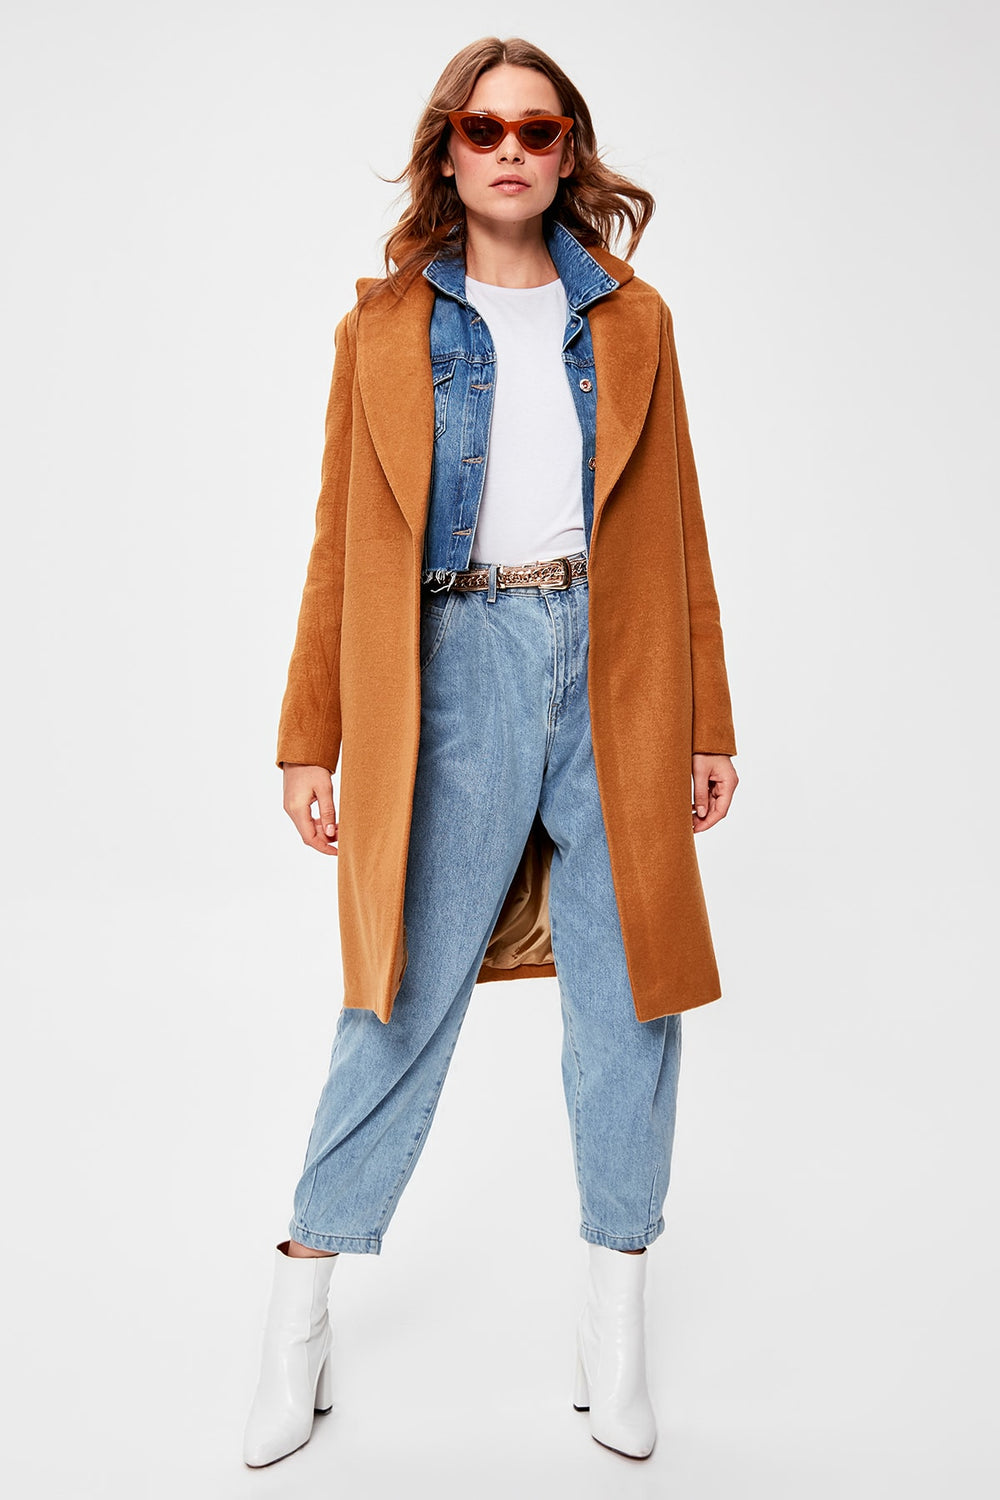 Camel Arched Woolen Stamp Coat - Top Maxy